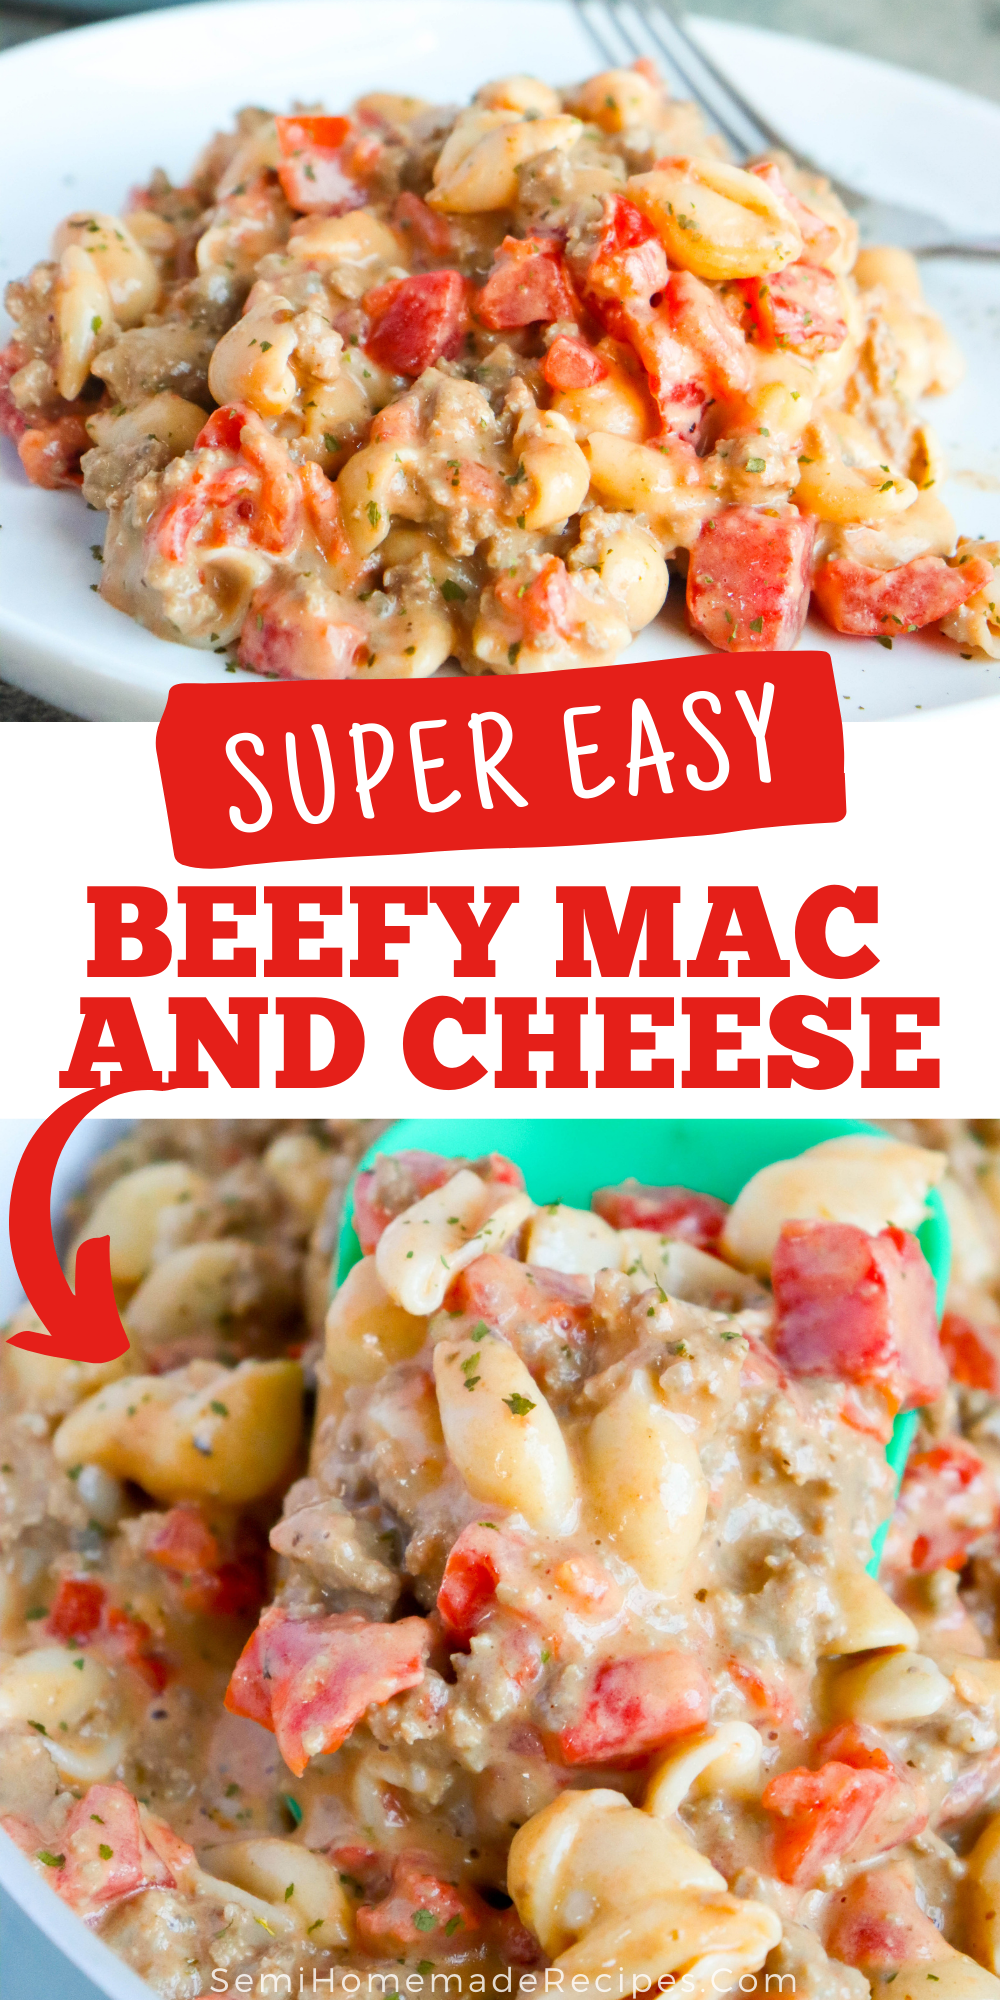 Easy and Cheesy! Ready for a tasty dinner idea? Pantry items with some ground beef creates this Beefy Mac and Cheese in less than 30 minutes!